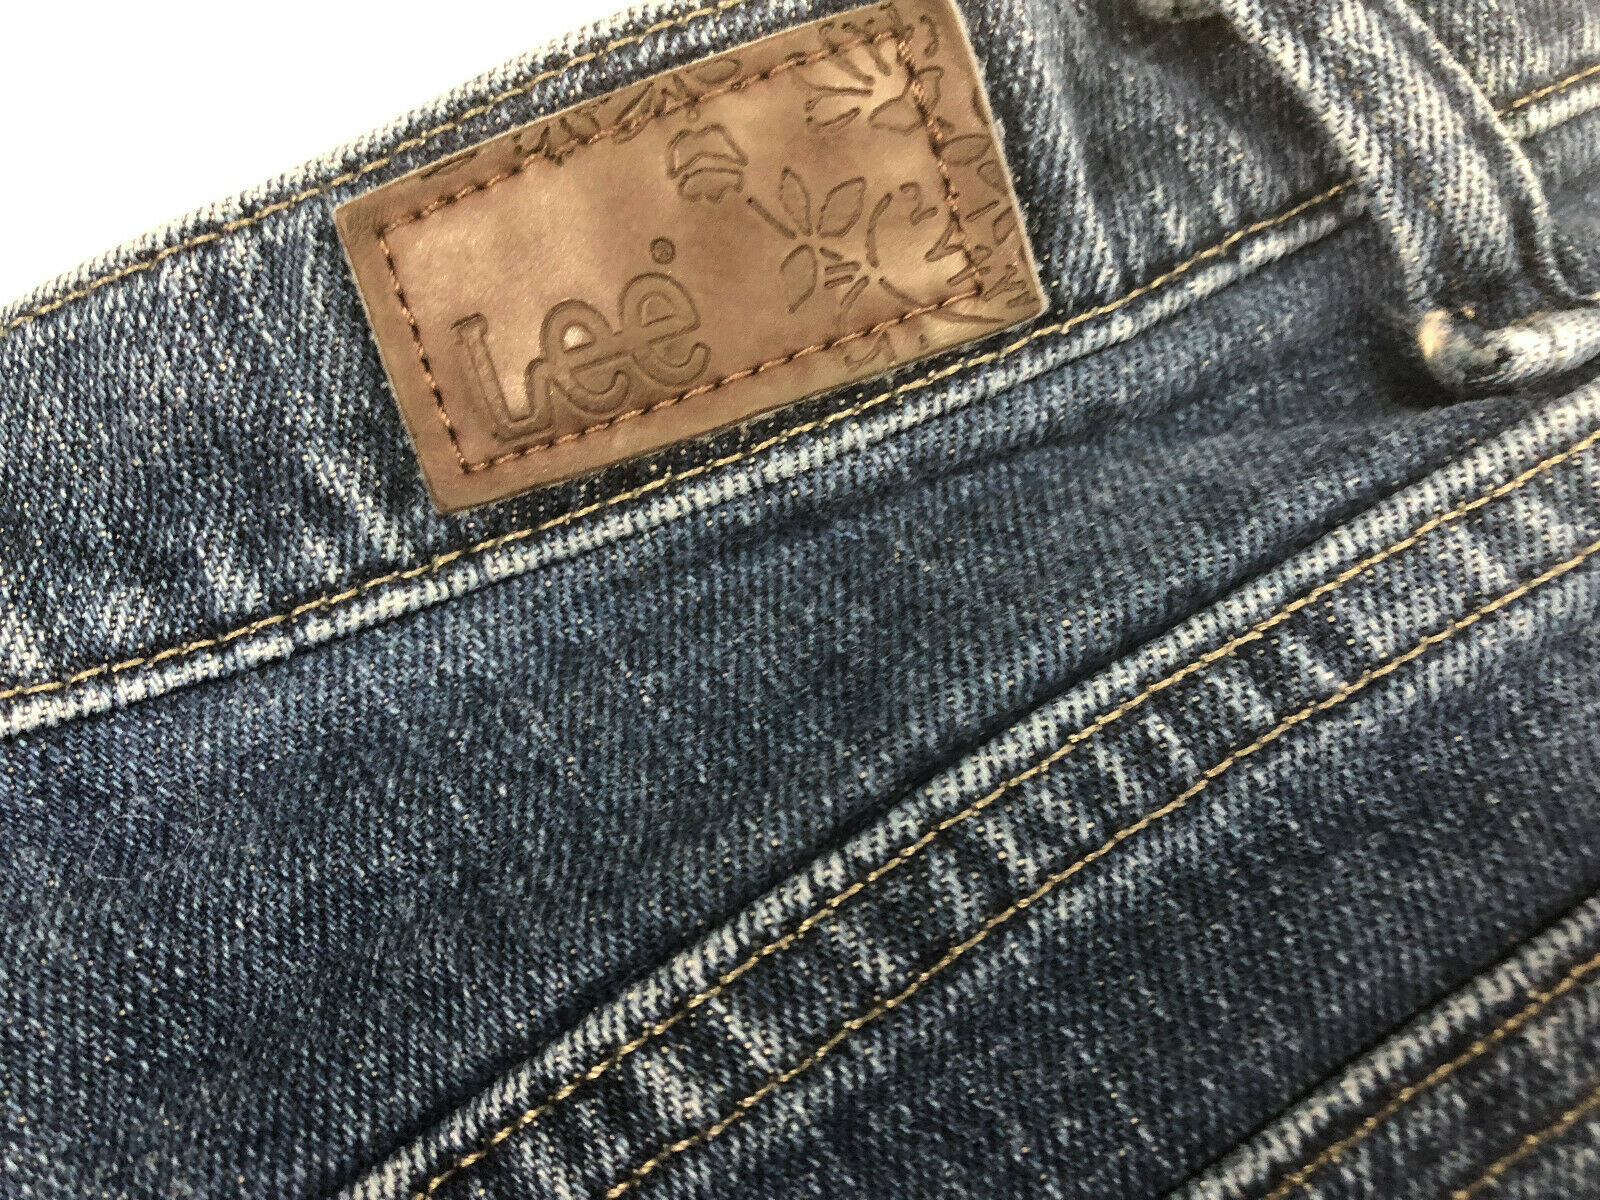 Lee Jeans Distressed Blue Jean Short Shorts Booty Size 8 Long image 5